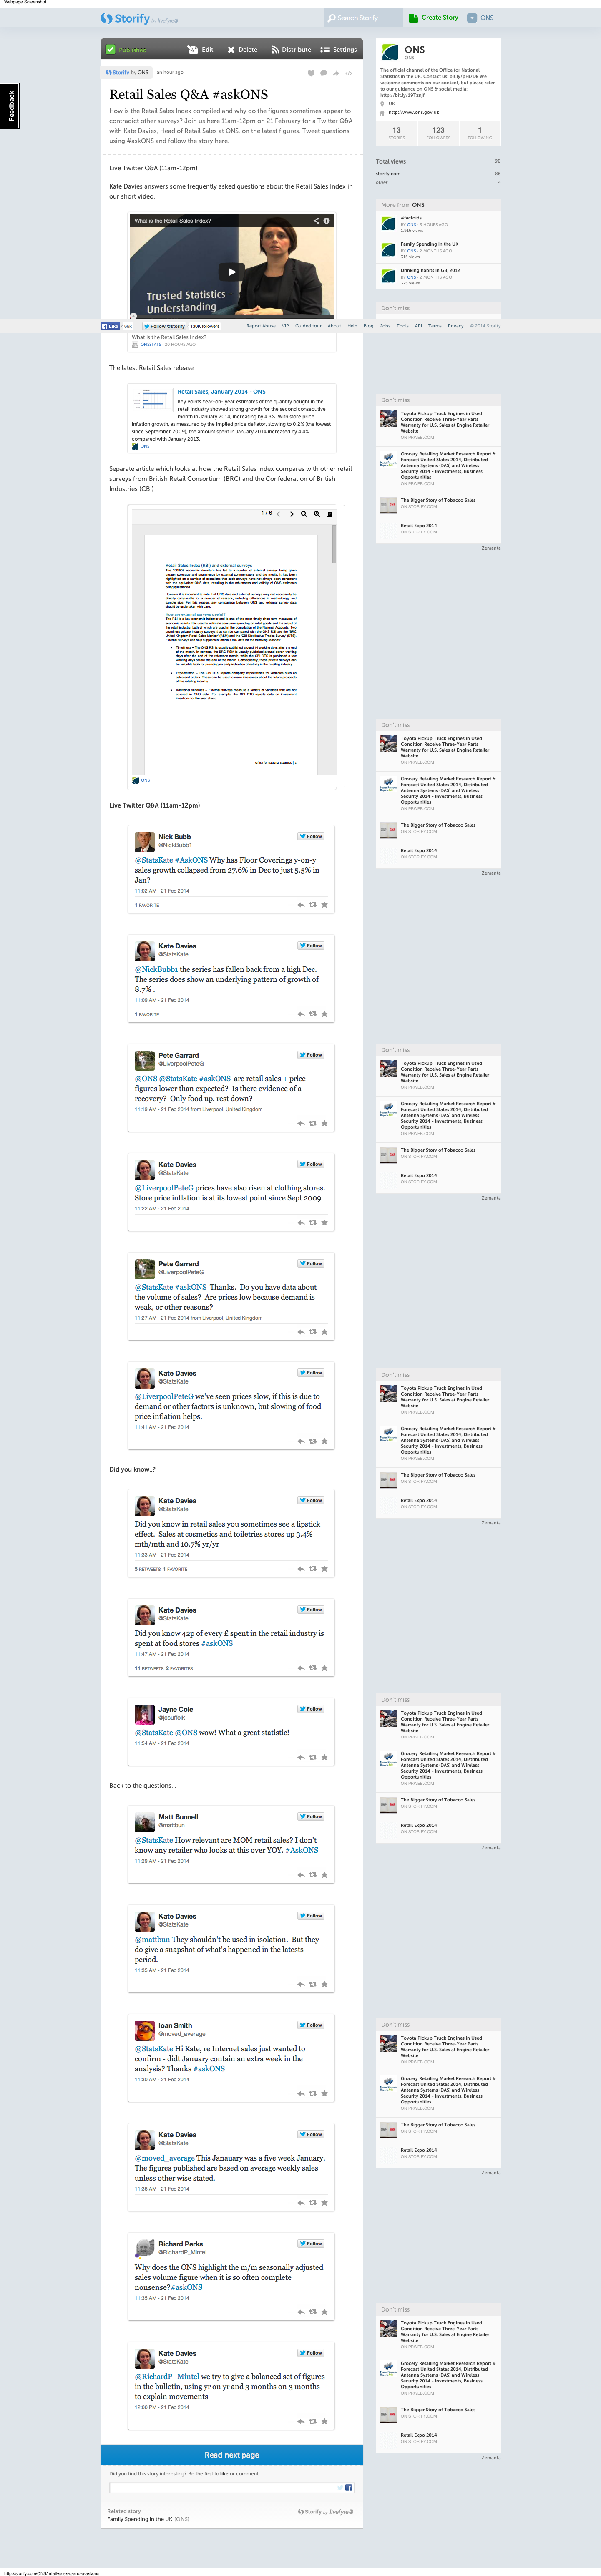 Retail Sales Q A #askONS  with tweets  · ONS · Storify (1)